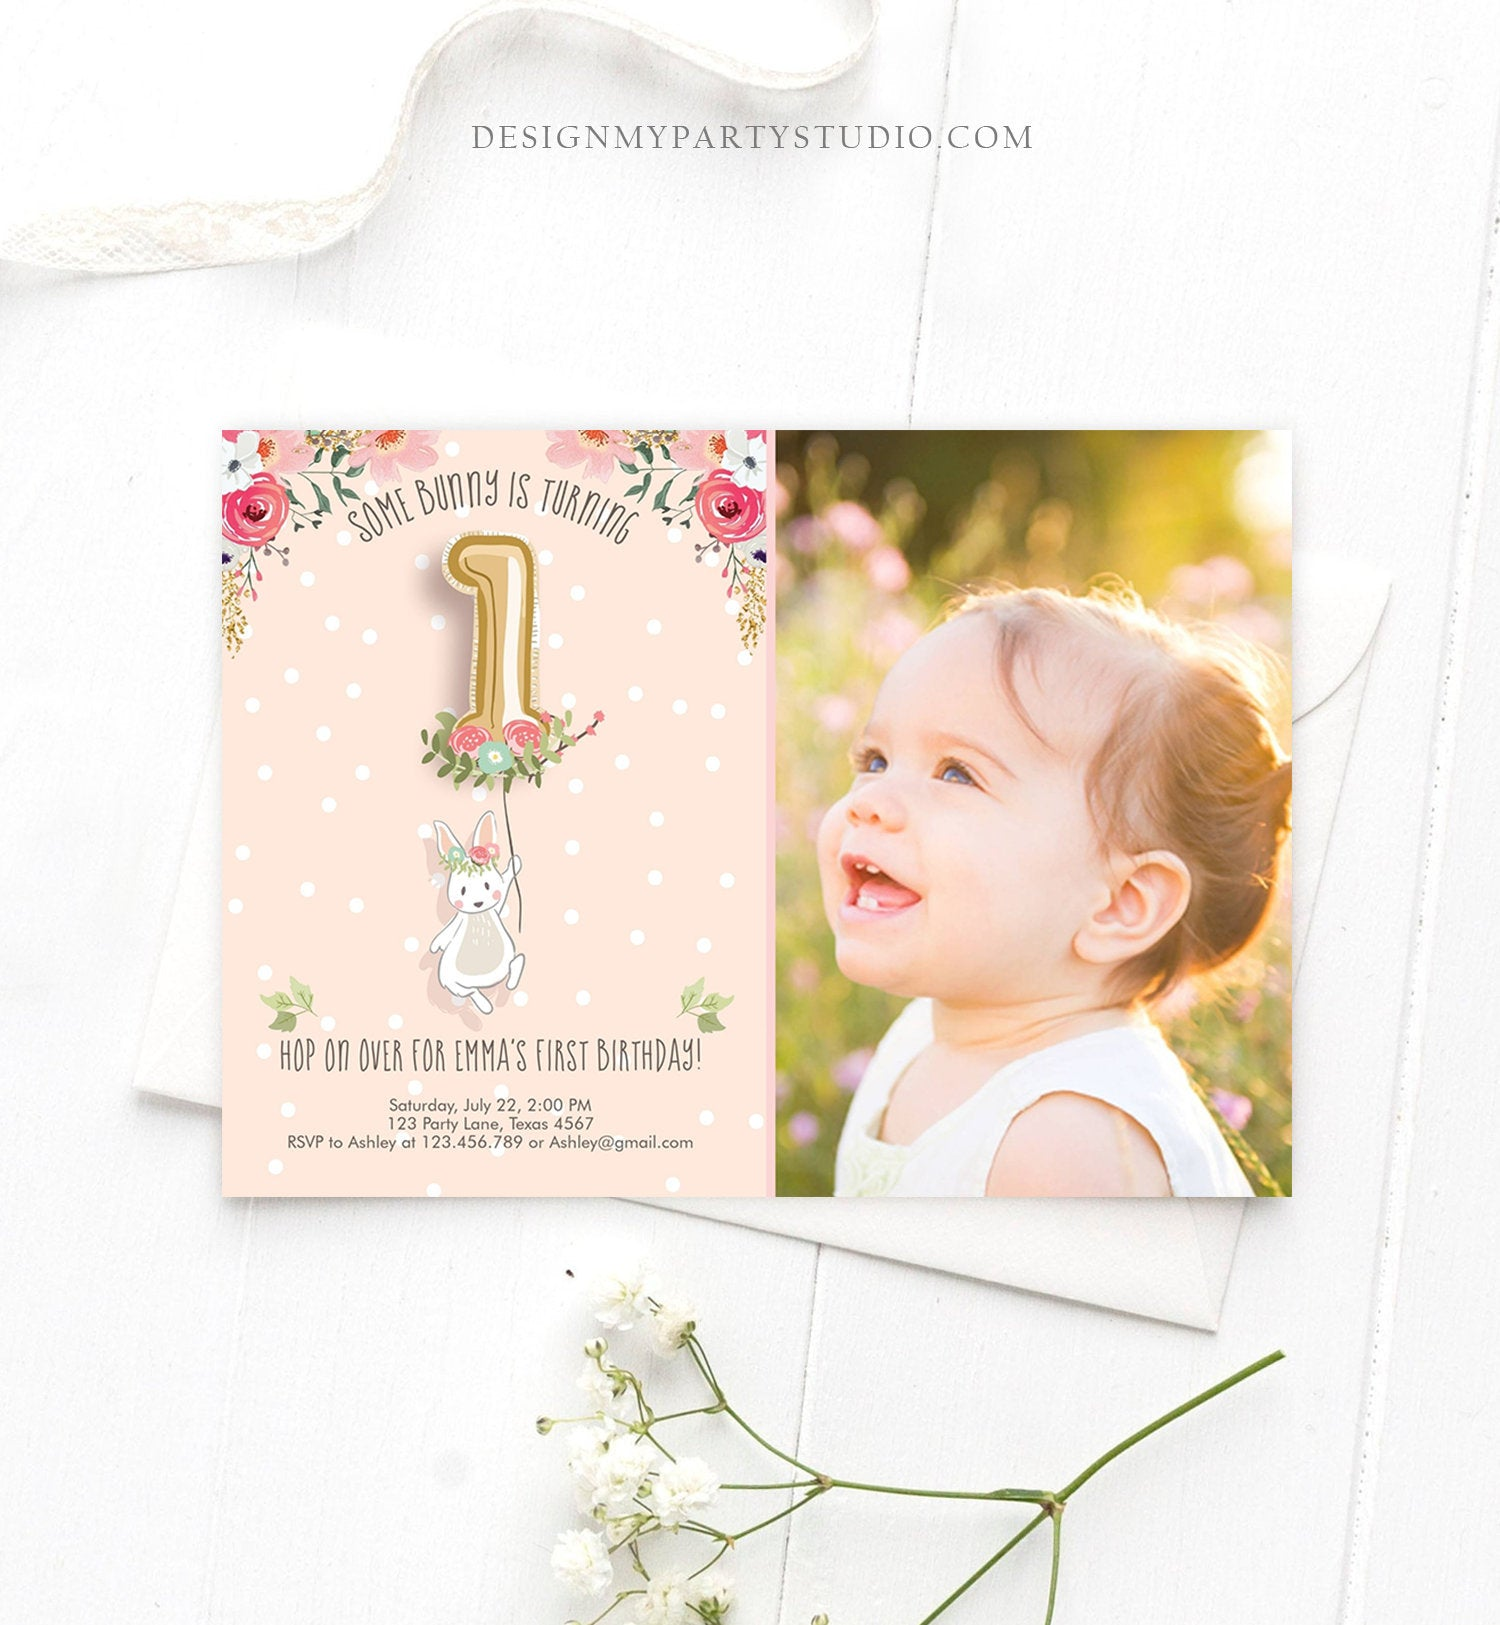 Editable Bunny Birthday Invitation Girl 1st Birthday Pink Gold Floral Bunny Spring Birthday Blush Printable Template Download Corjl 0117